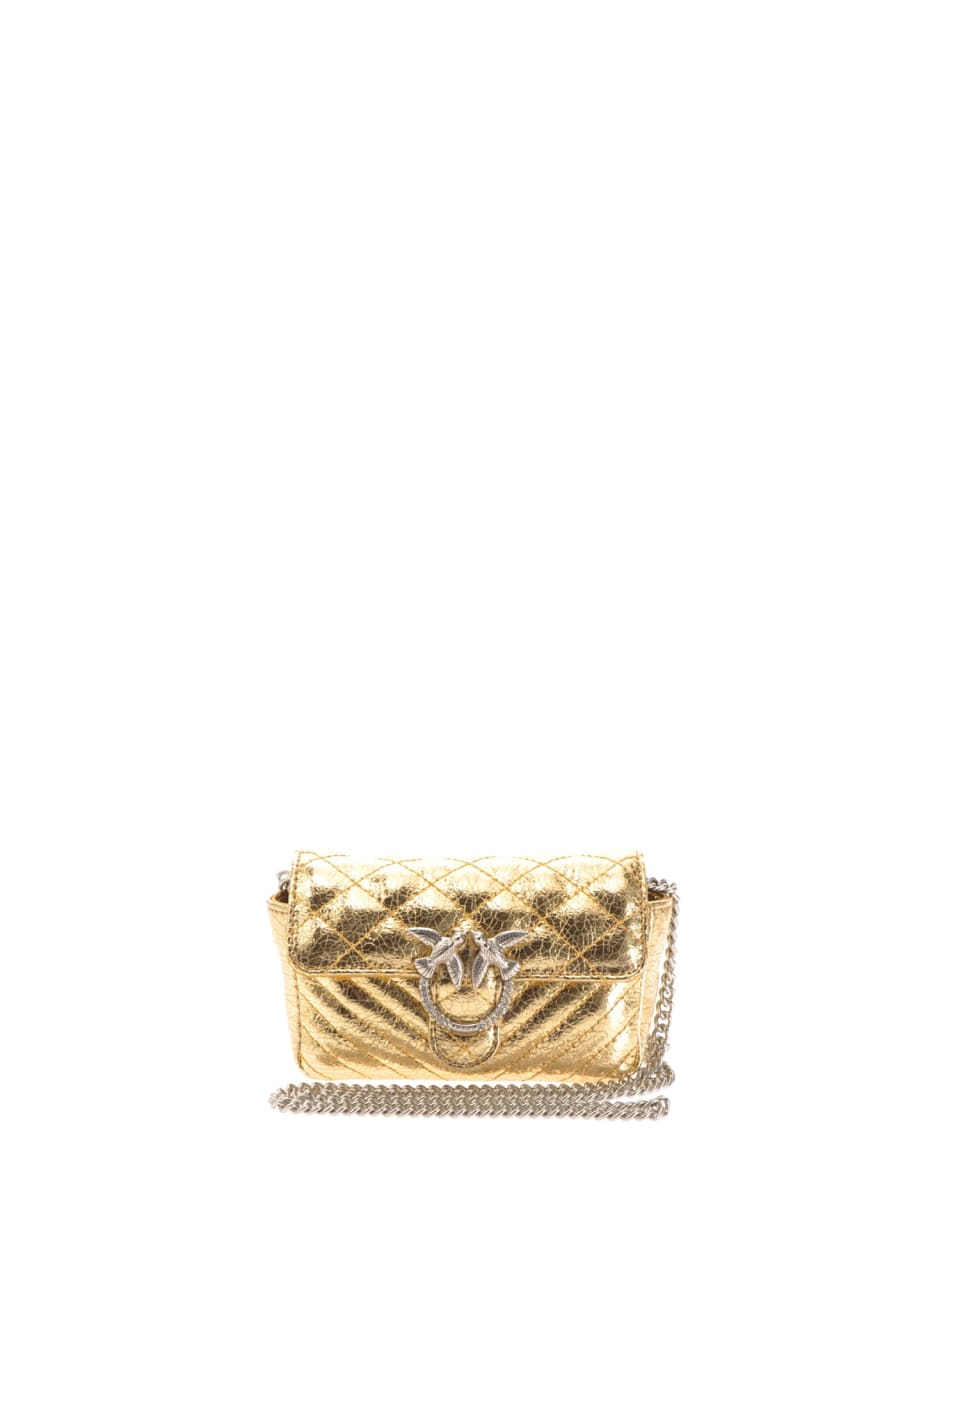 Tiny Love Bag V Mixy in laminated nappa leather - Pinko